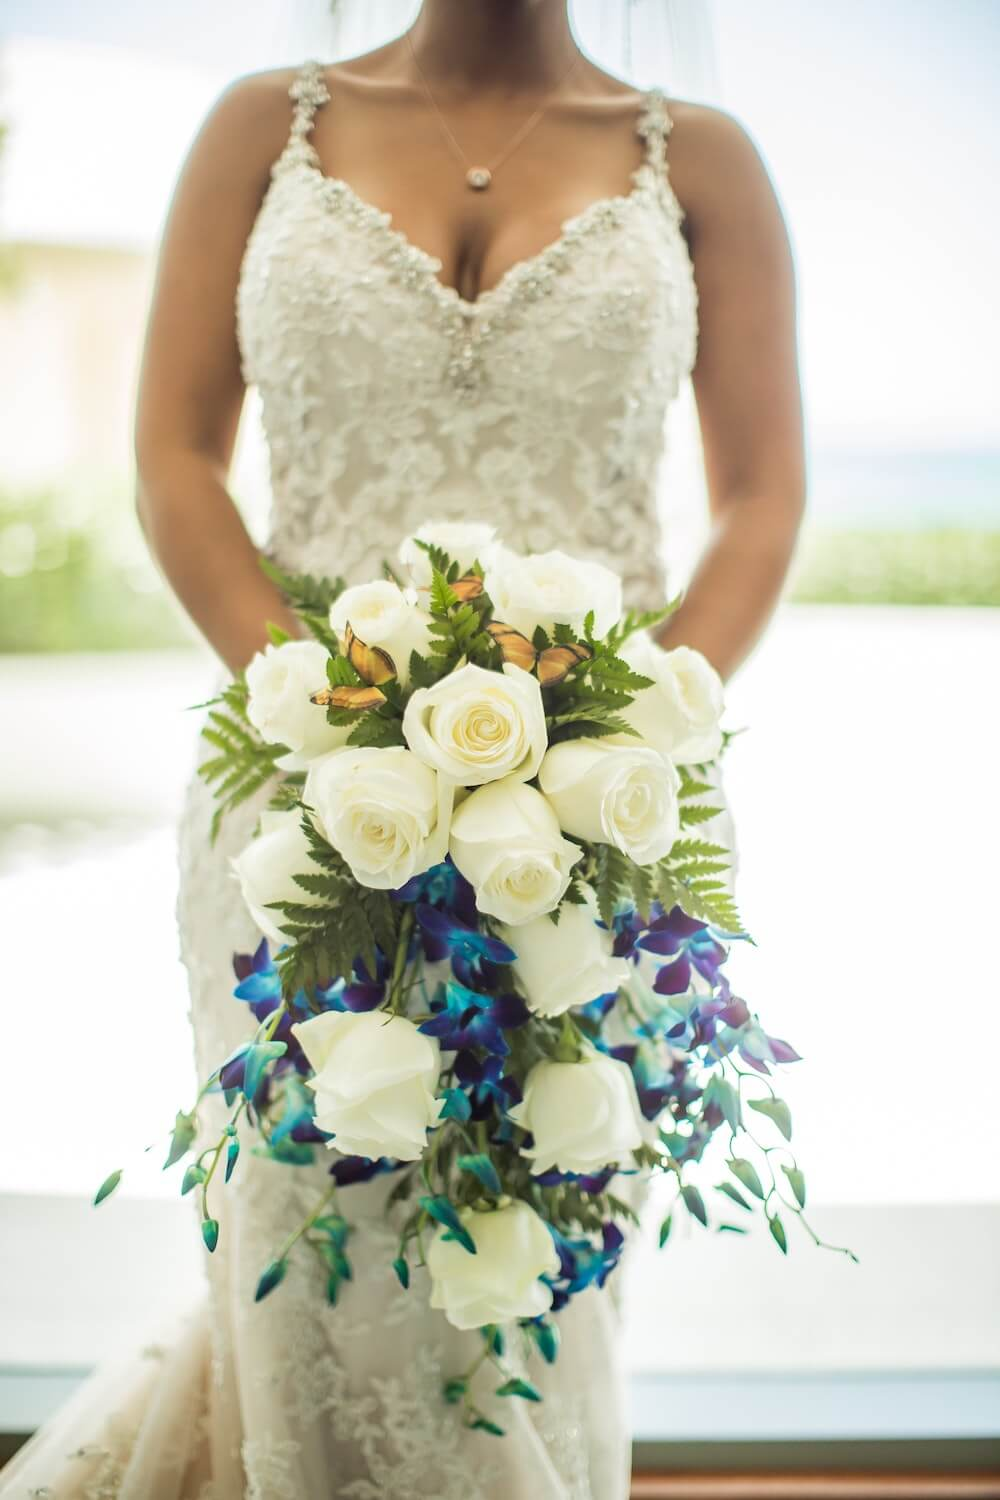 Blue and white flowers in a cascade bouquet held by woman in wedding dress